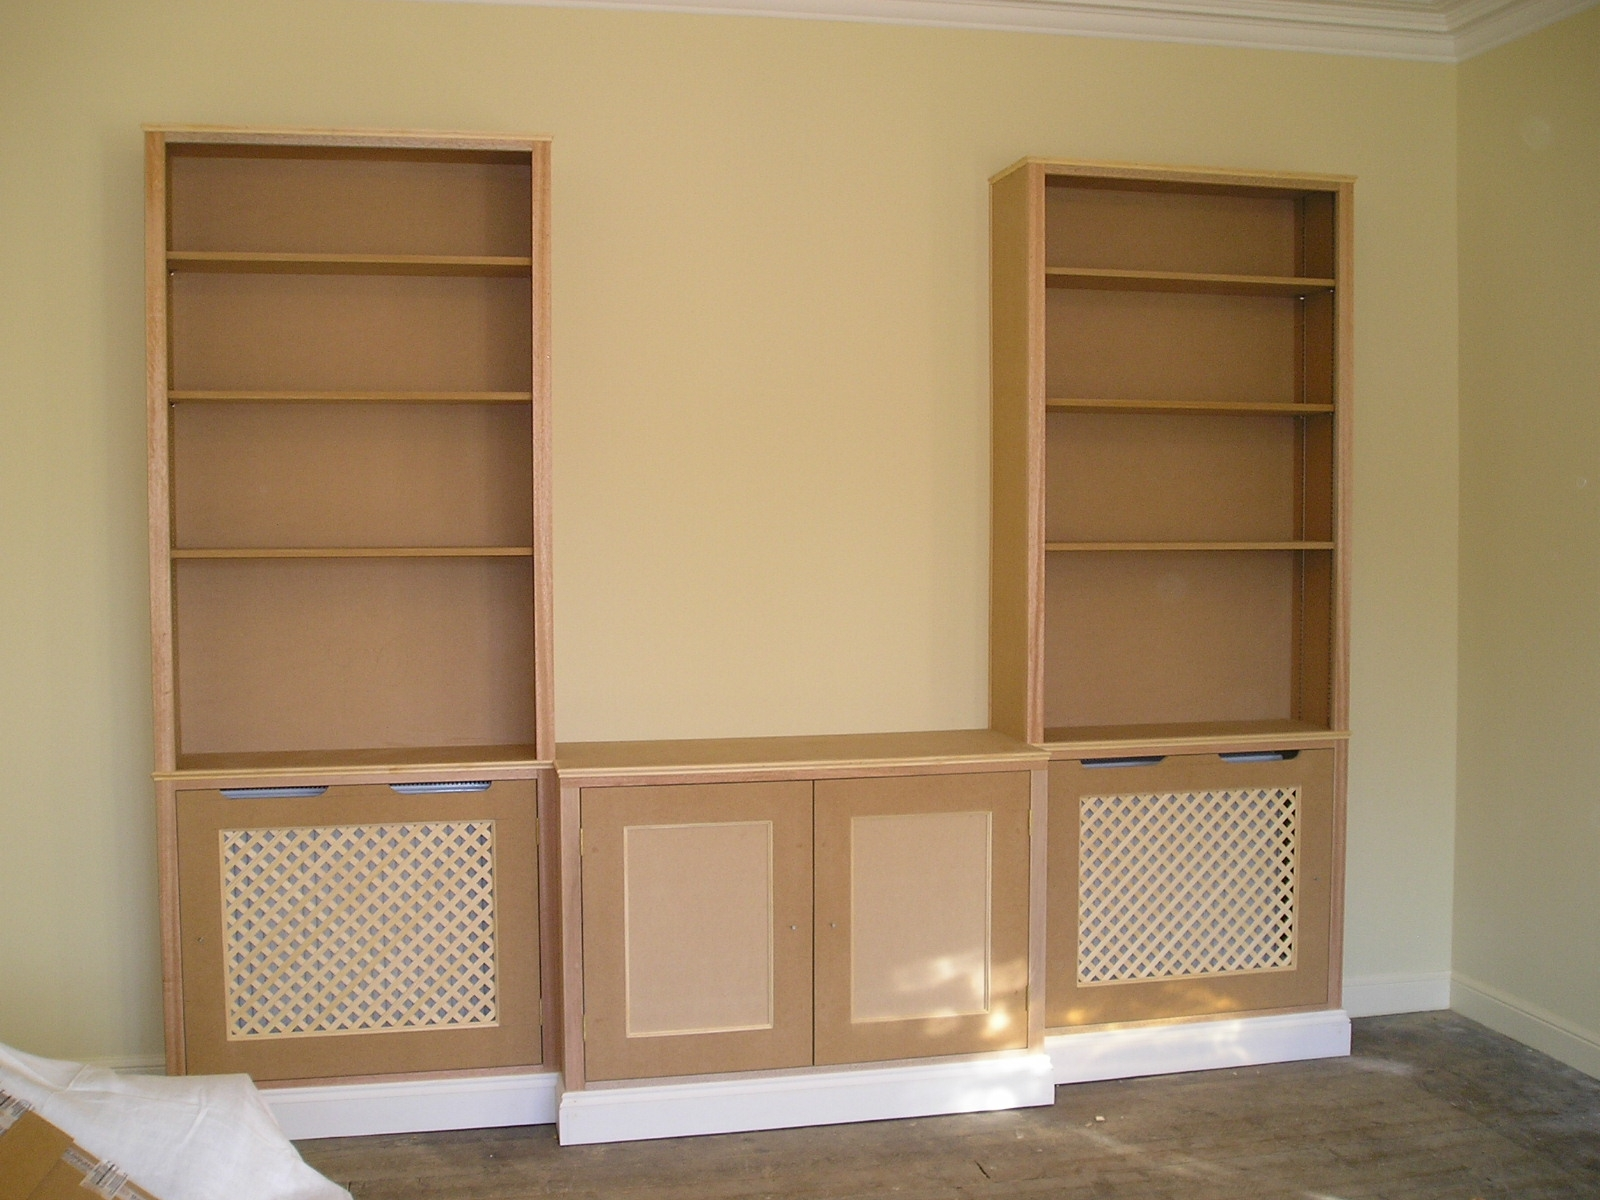 Radiator Covers Holloway Joinery In Radiator Covers And Bookcases (Image 10 of 15)